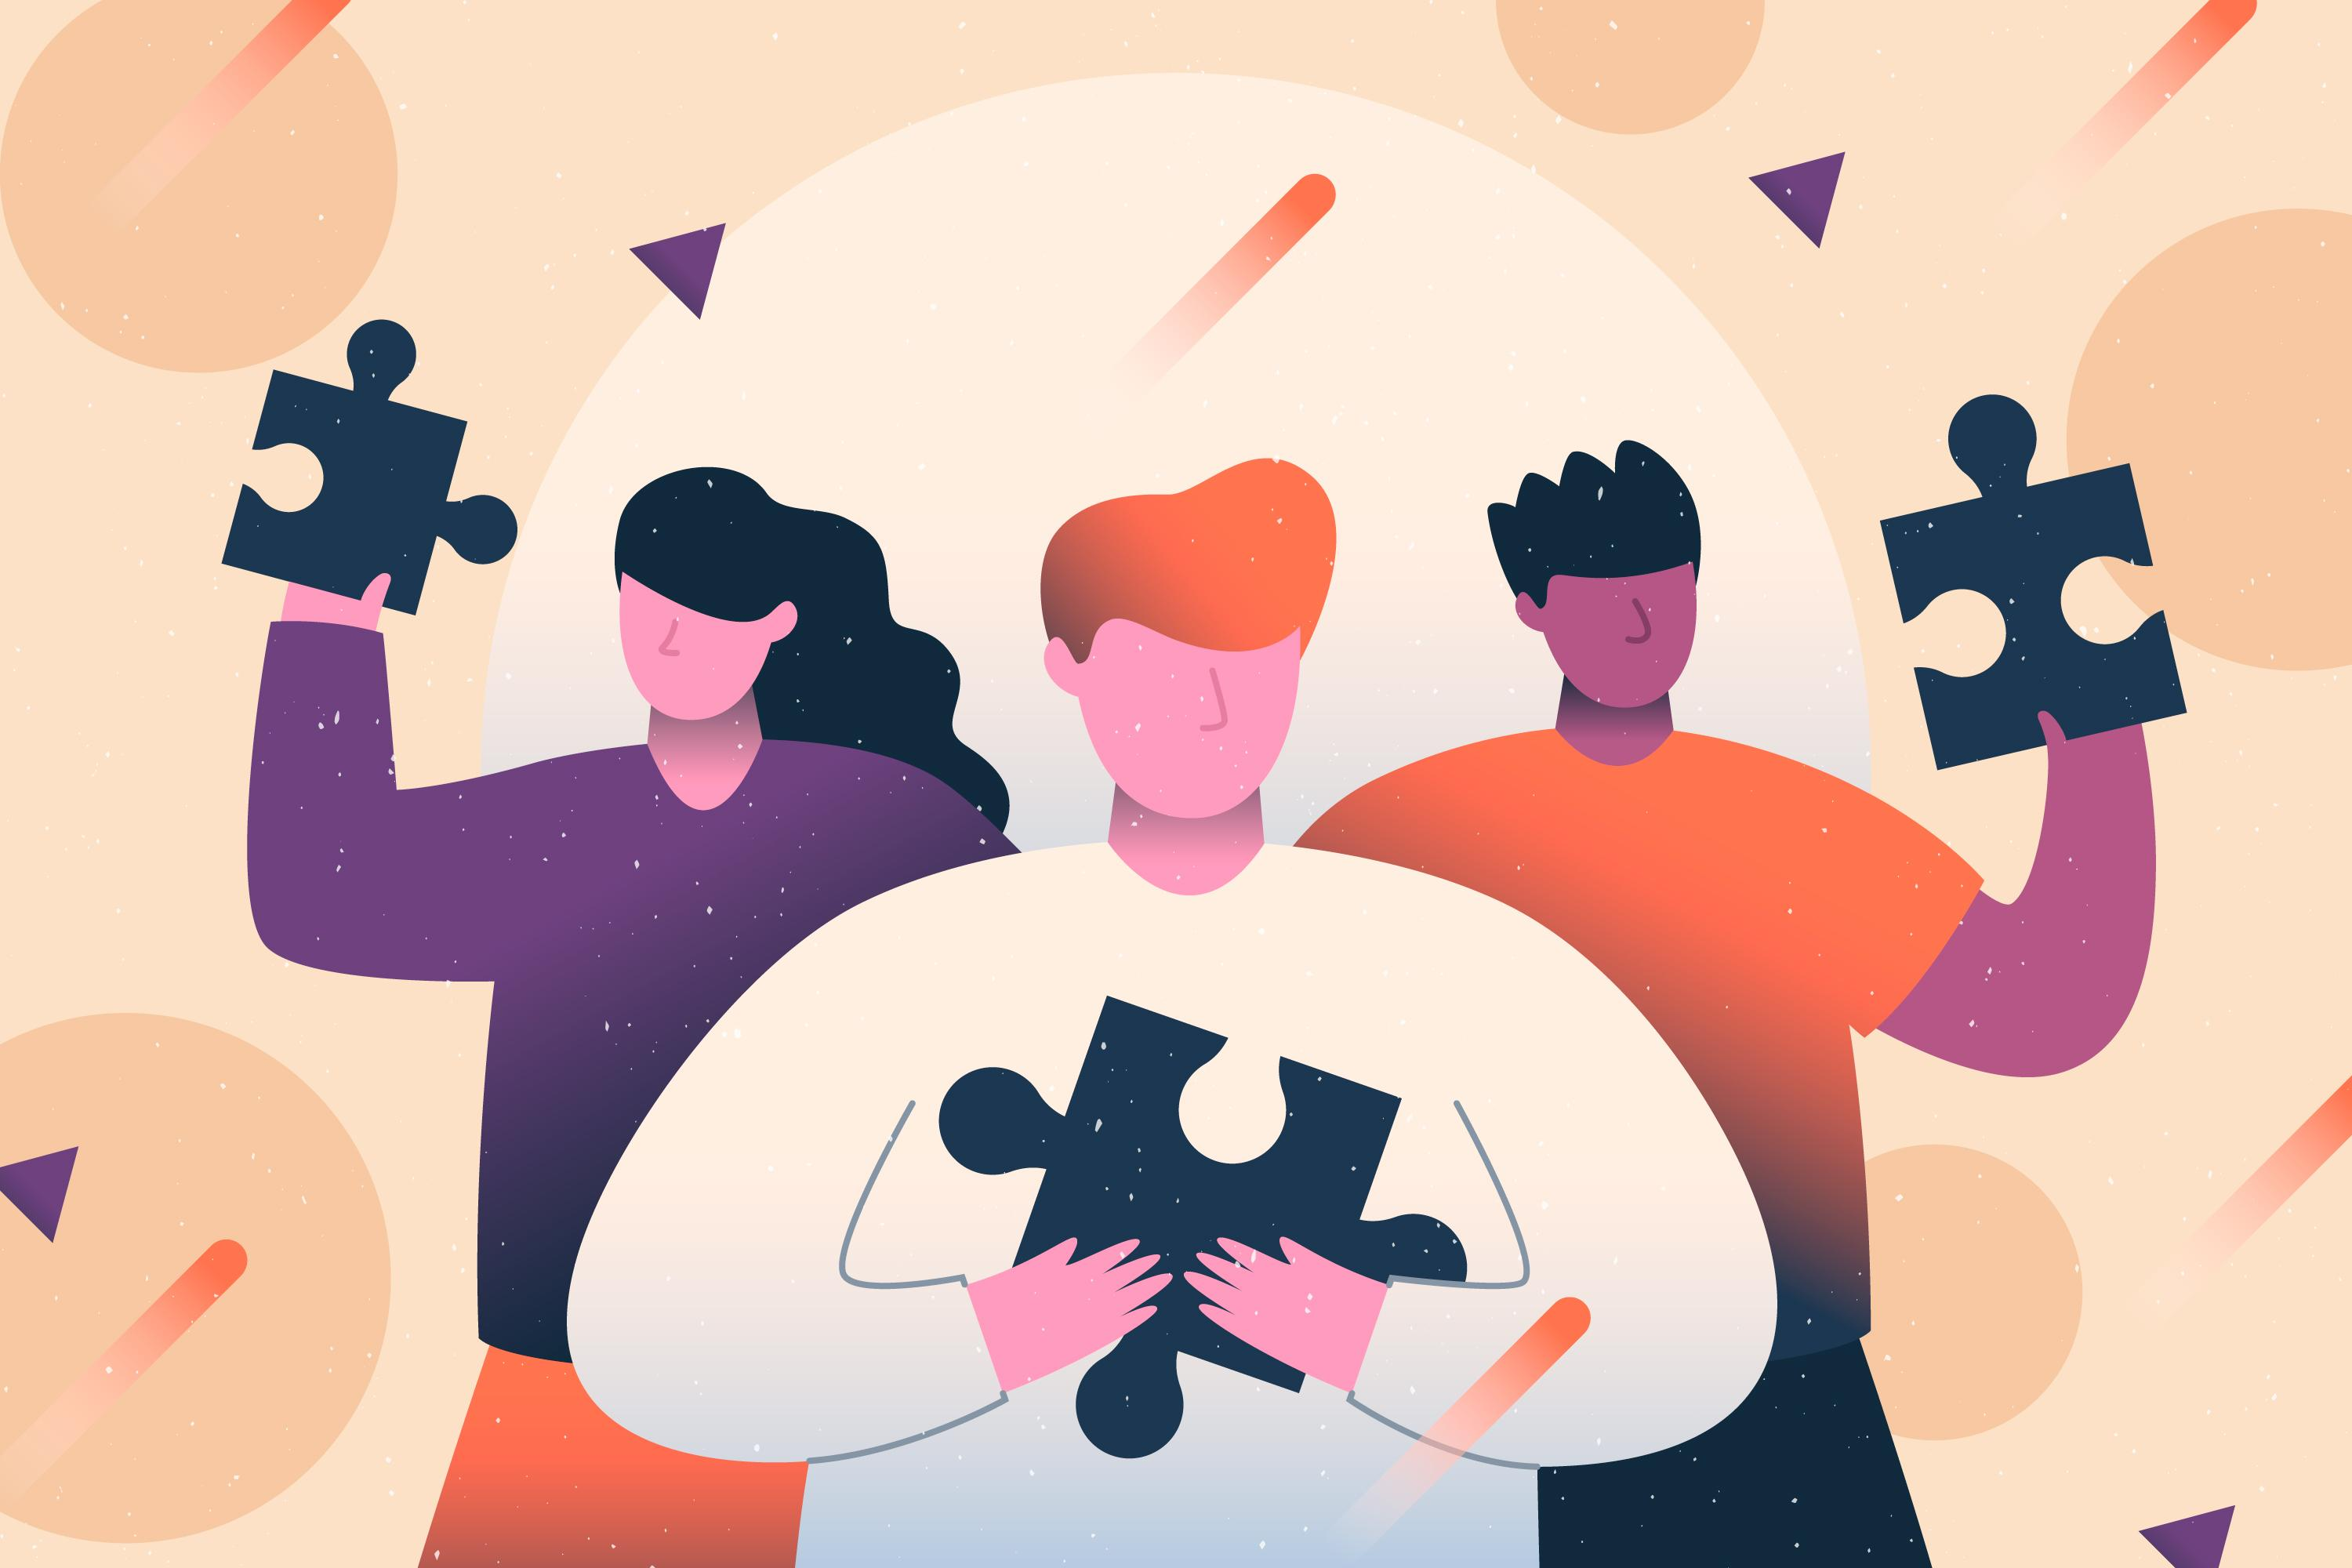 Digital art shows three figures, each holding up a large puzzle piece. The figure in the middle holds it close to their heart. Behind them is a beige background with circles and triangles and shooting stars.